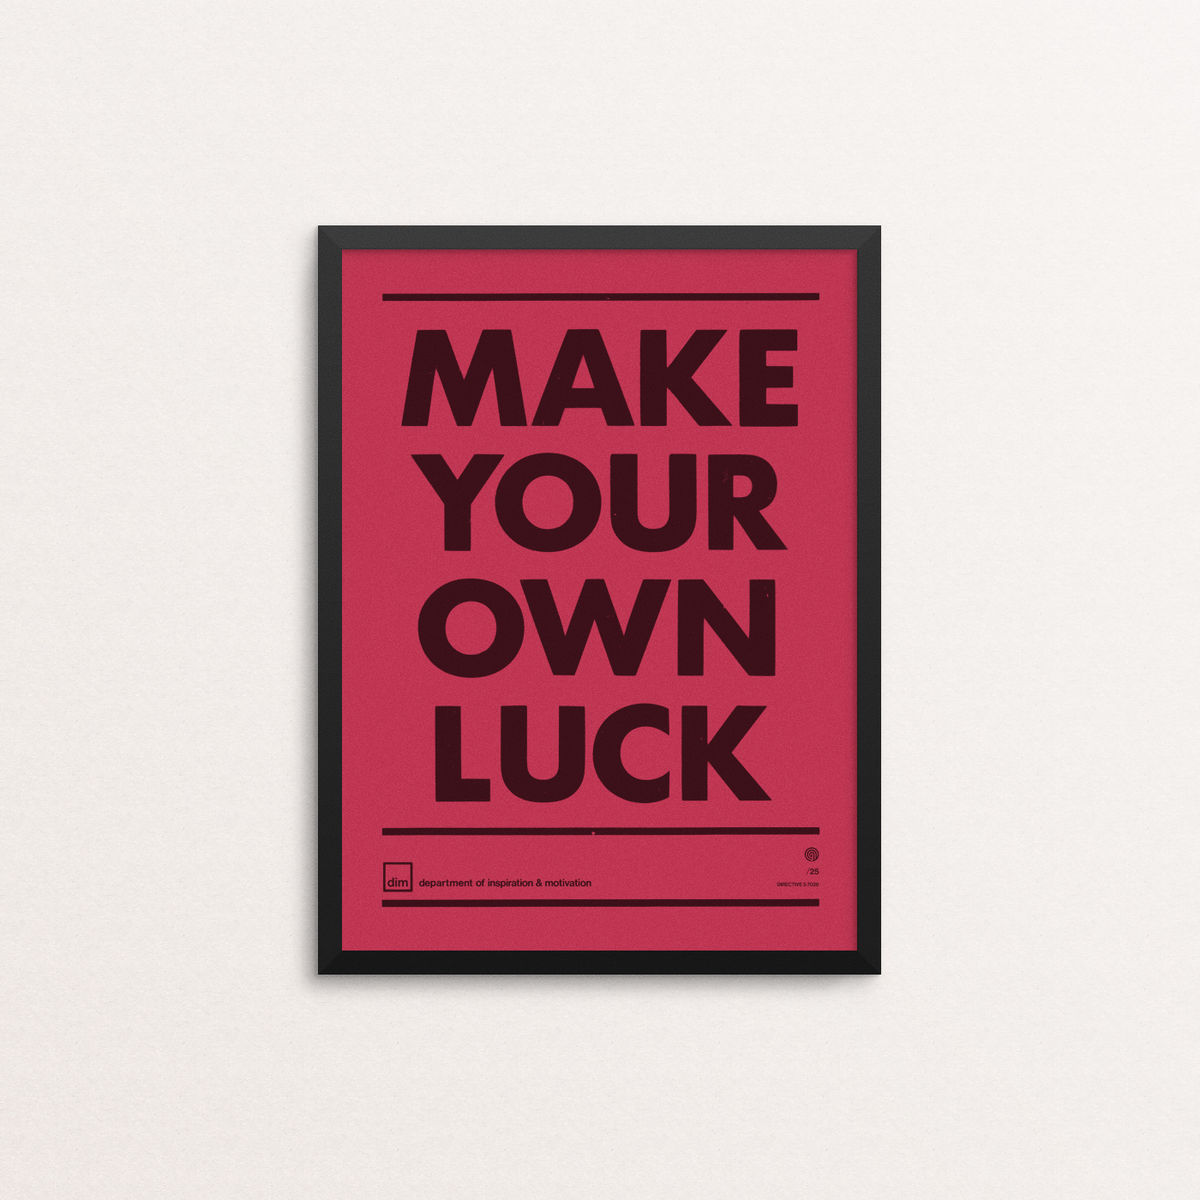 Make Your Own Luck - Ltd Edition Vermilion - product image